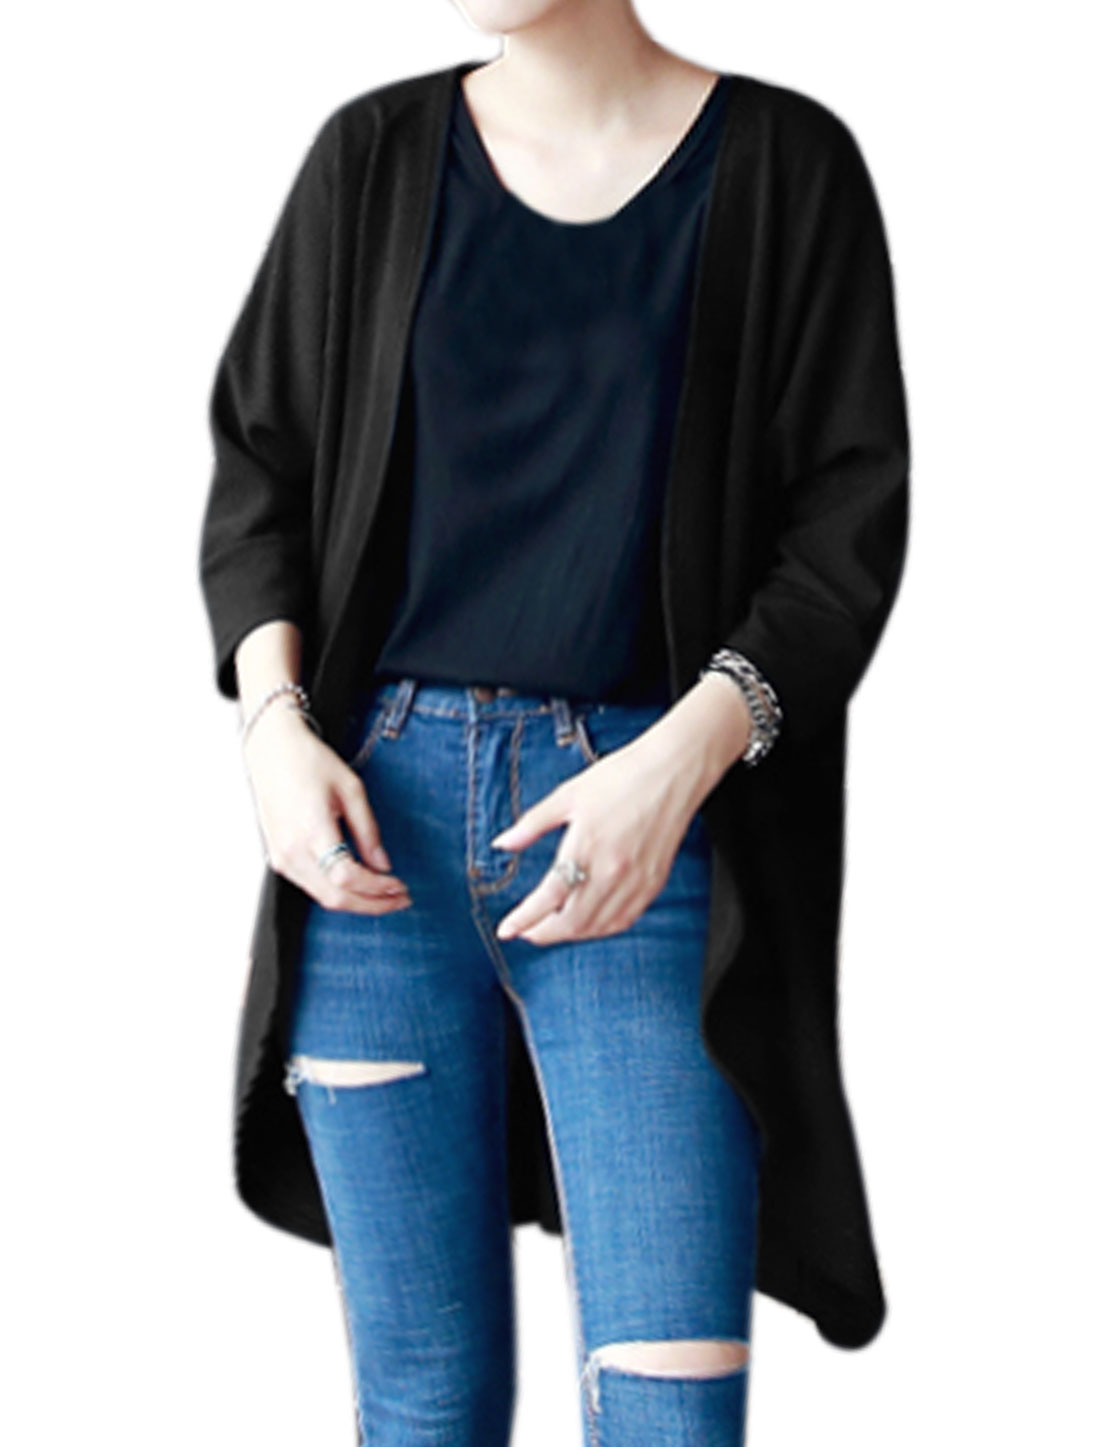 Women 3/4 Batwing Sleeves Front Opening Asymmetric Hem Tunic Cardigan Black XS